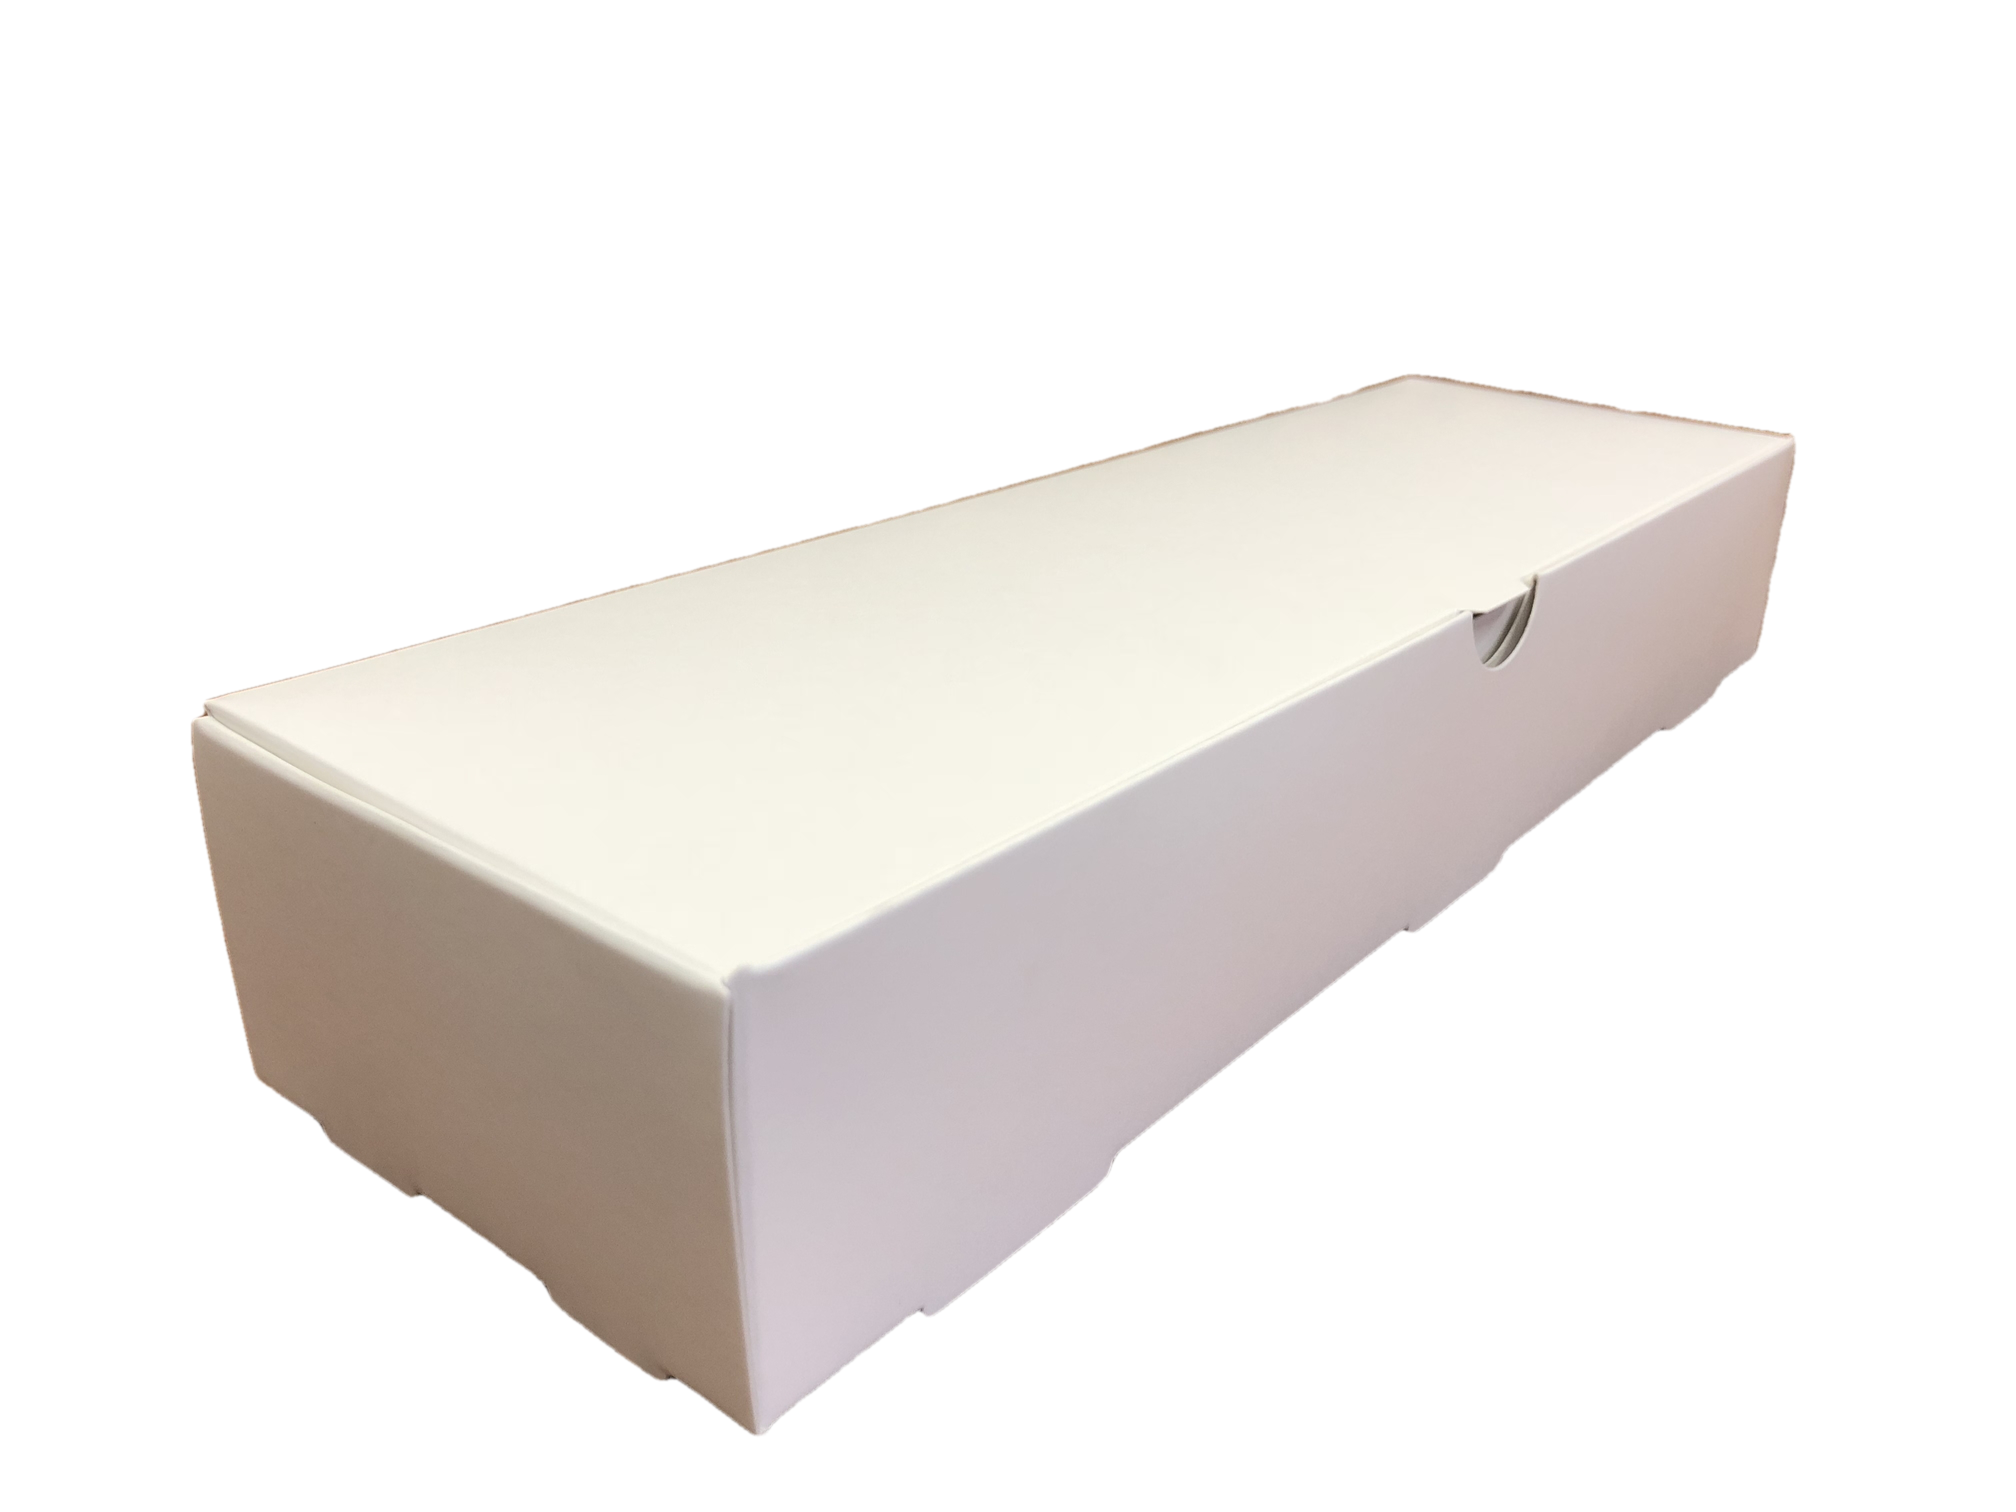 Business card boxes folders unlimited order your business card boxes either plain white on white or fancy them up a little with your logo phone number etc using foil stamping on the lid colourmoves